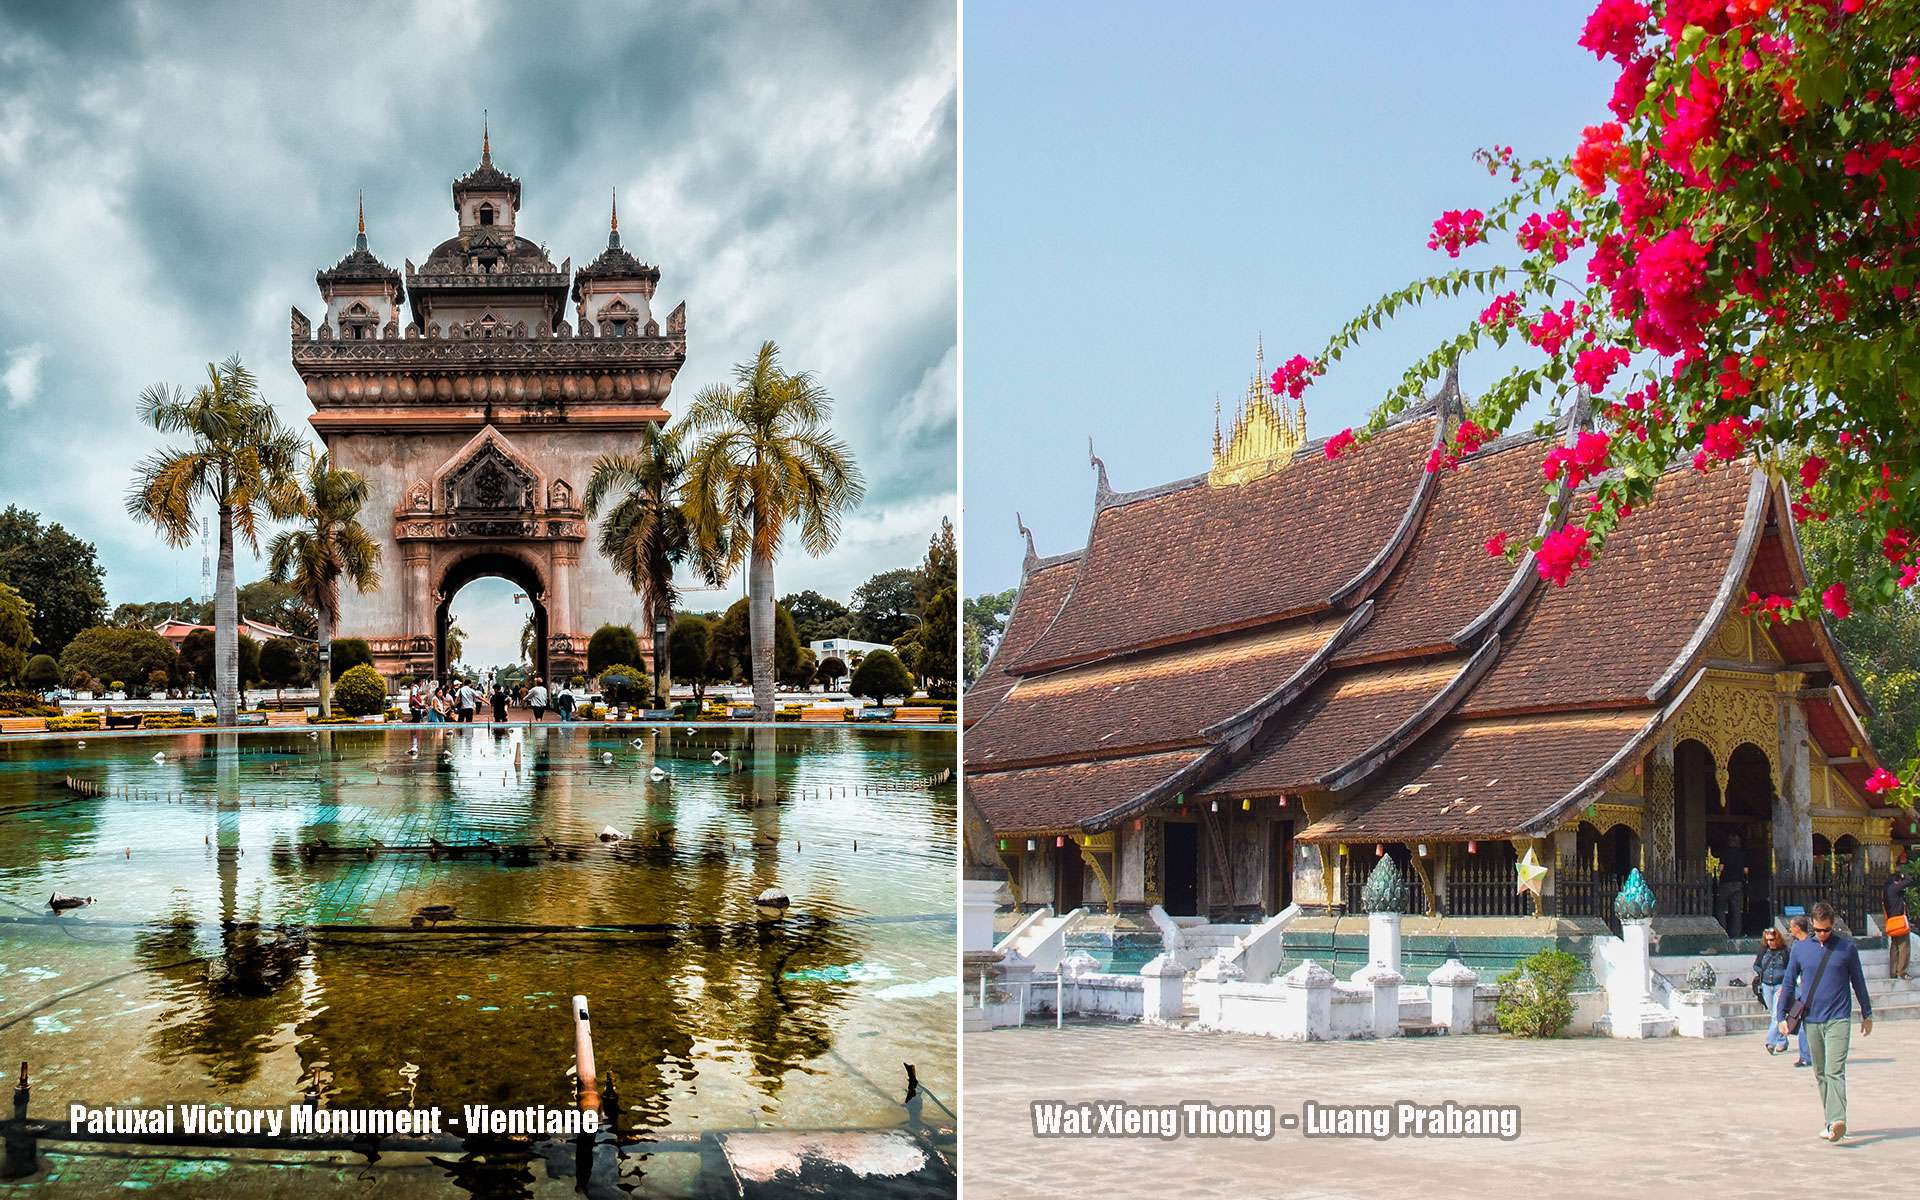 Attractions of Vientiane and Luang Prabang